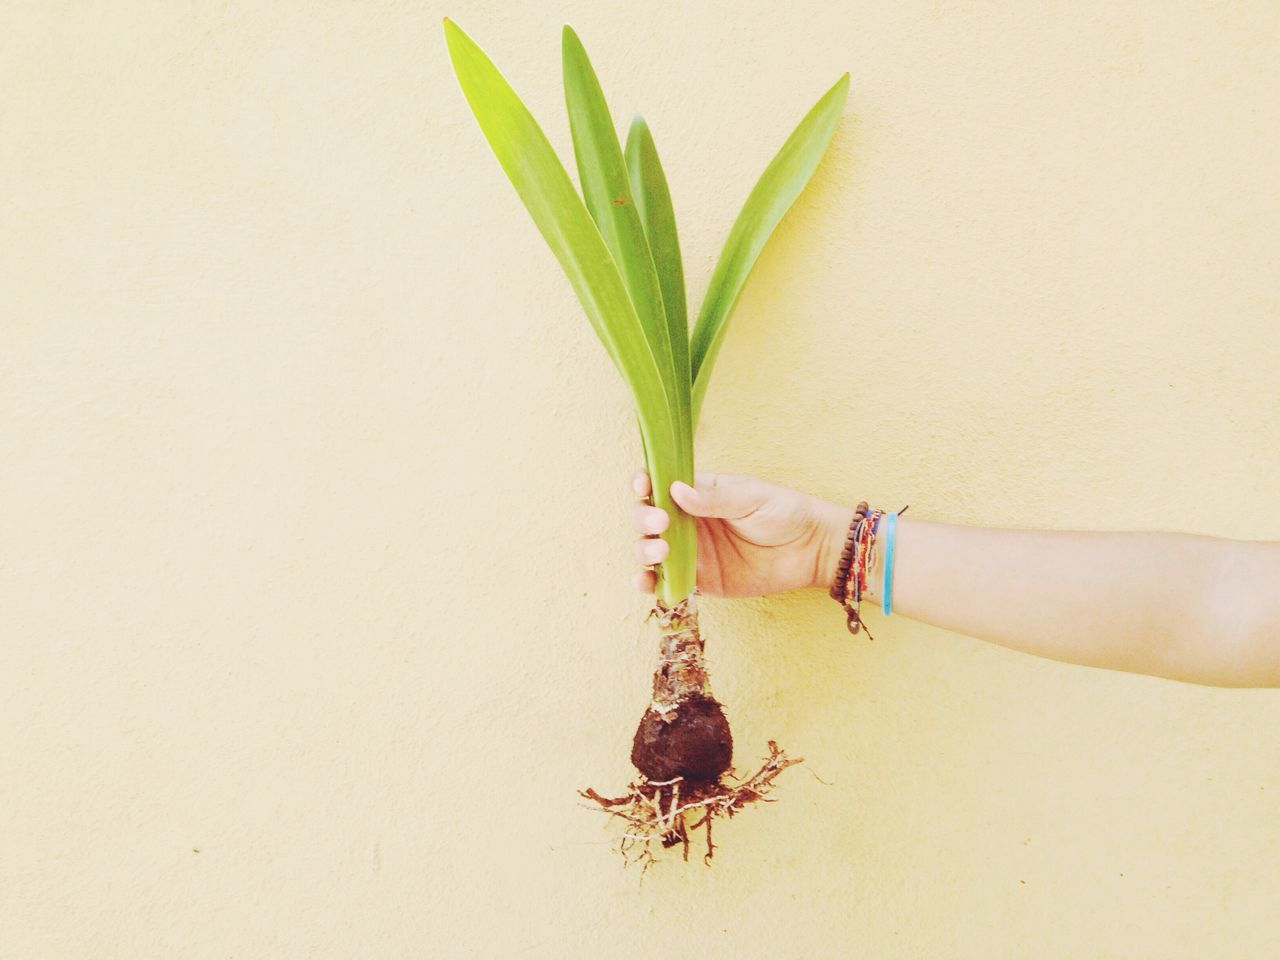 Cropped hand holding plant against wall